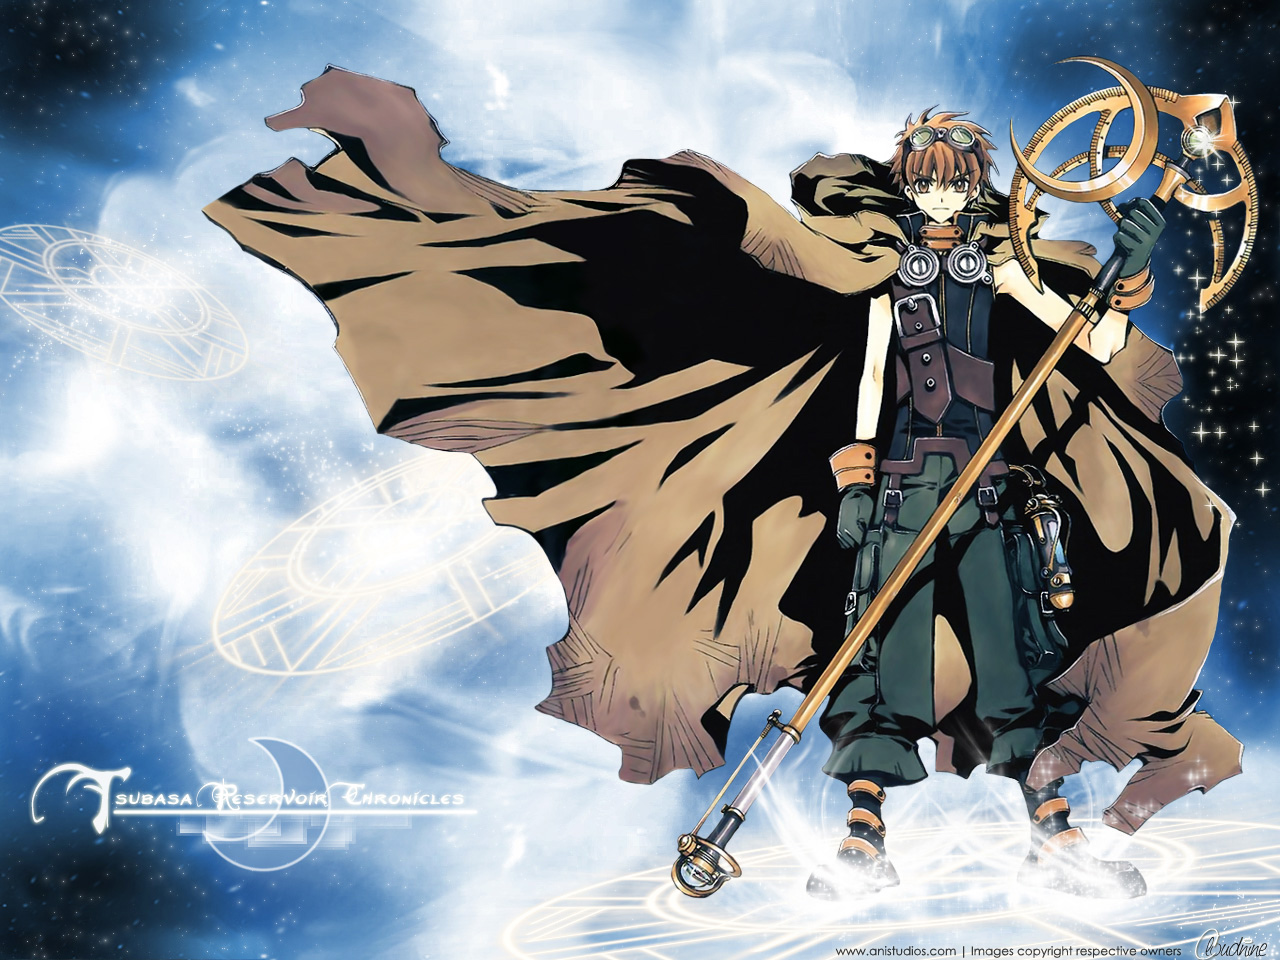 Tsubasa Reservoir Chronicle 1280x960 Anime Wallpapers